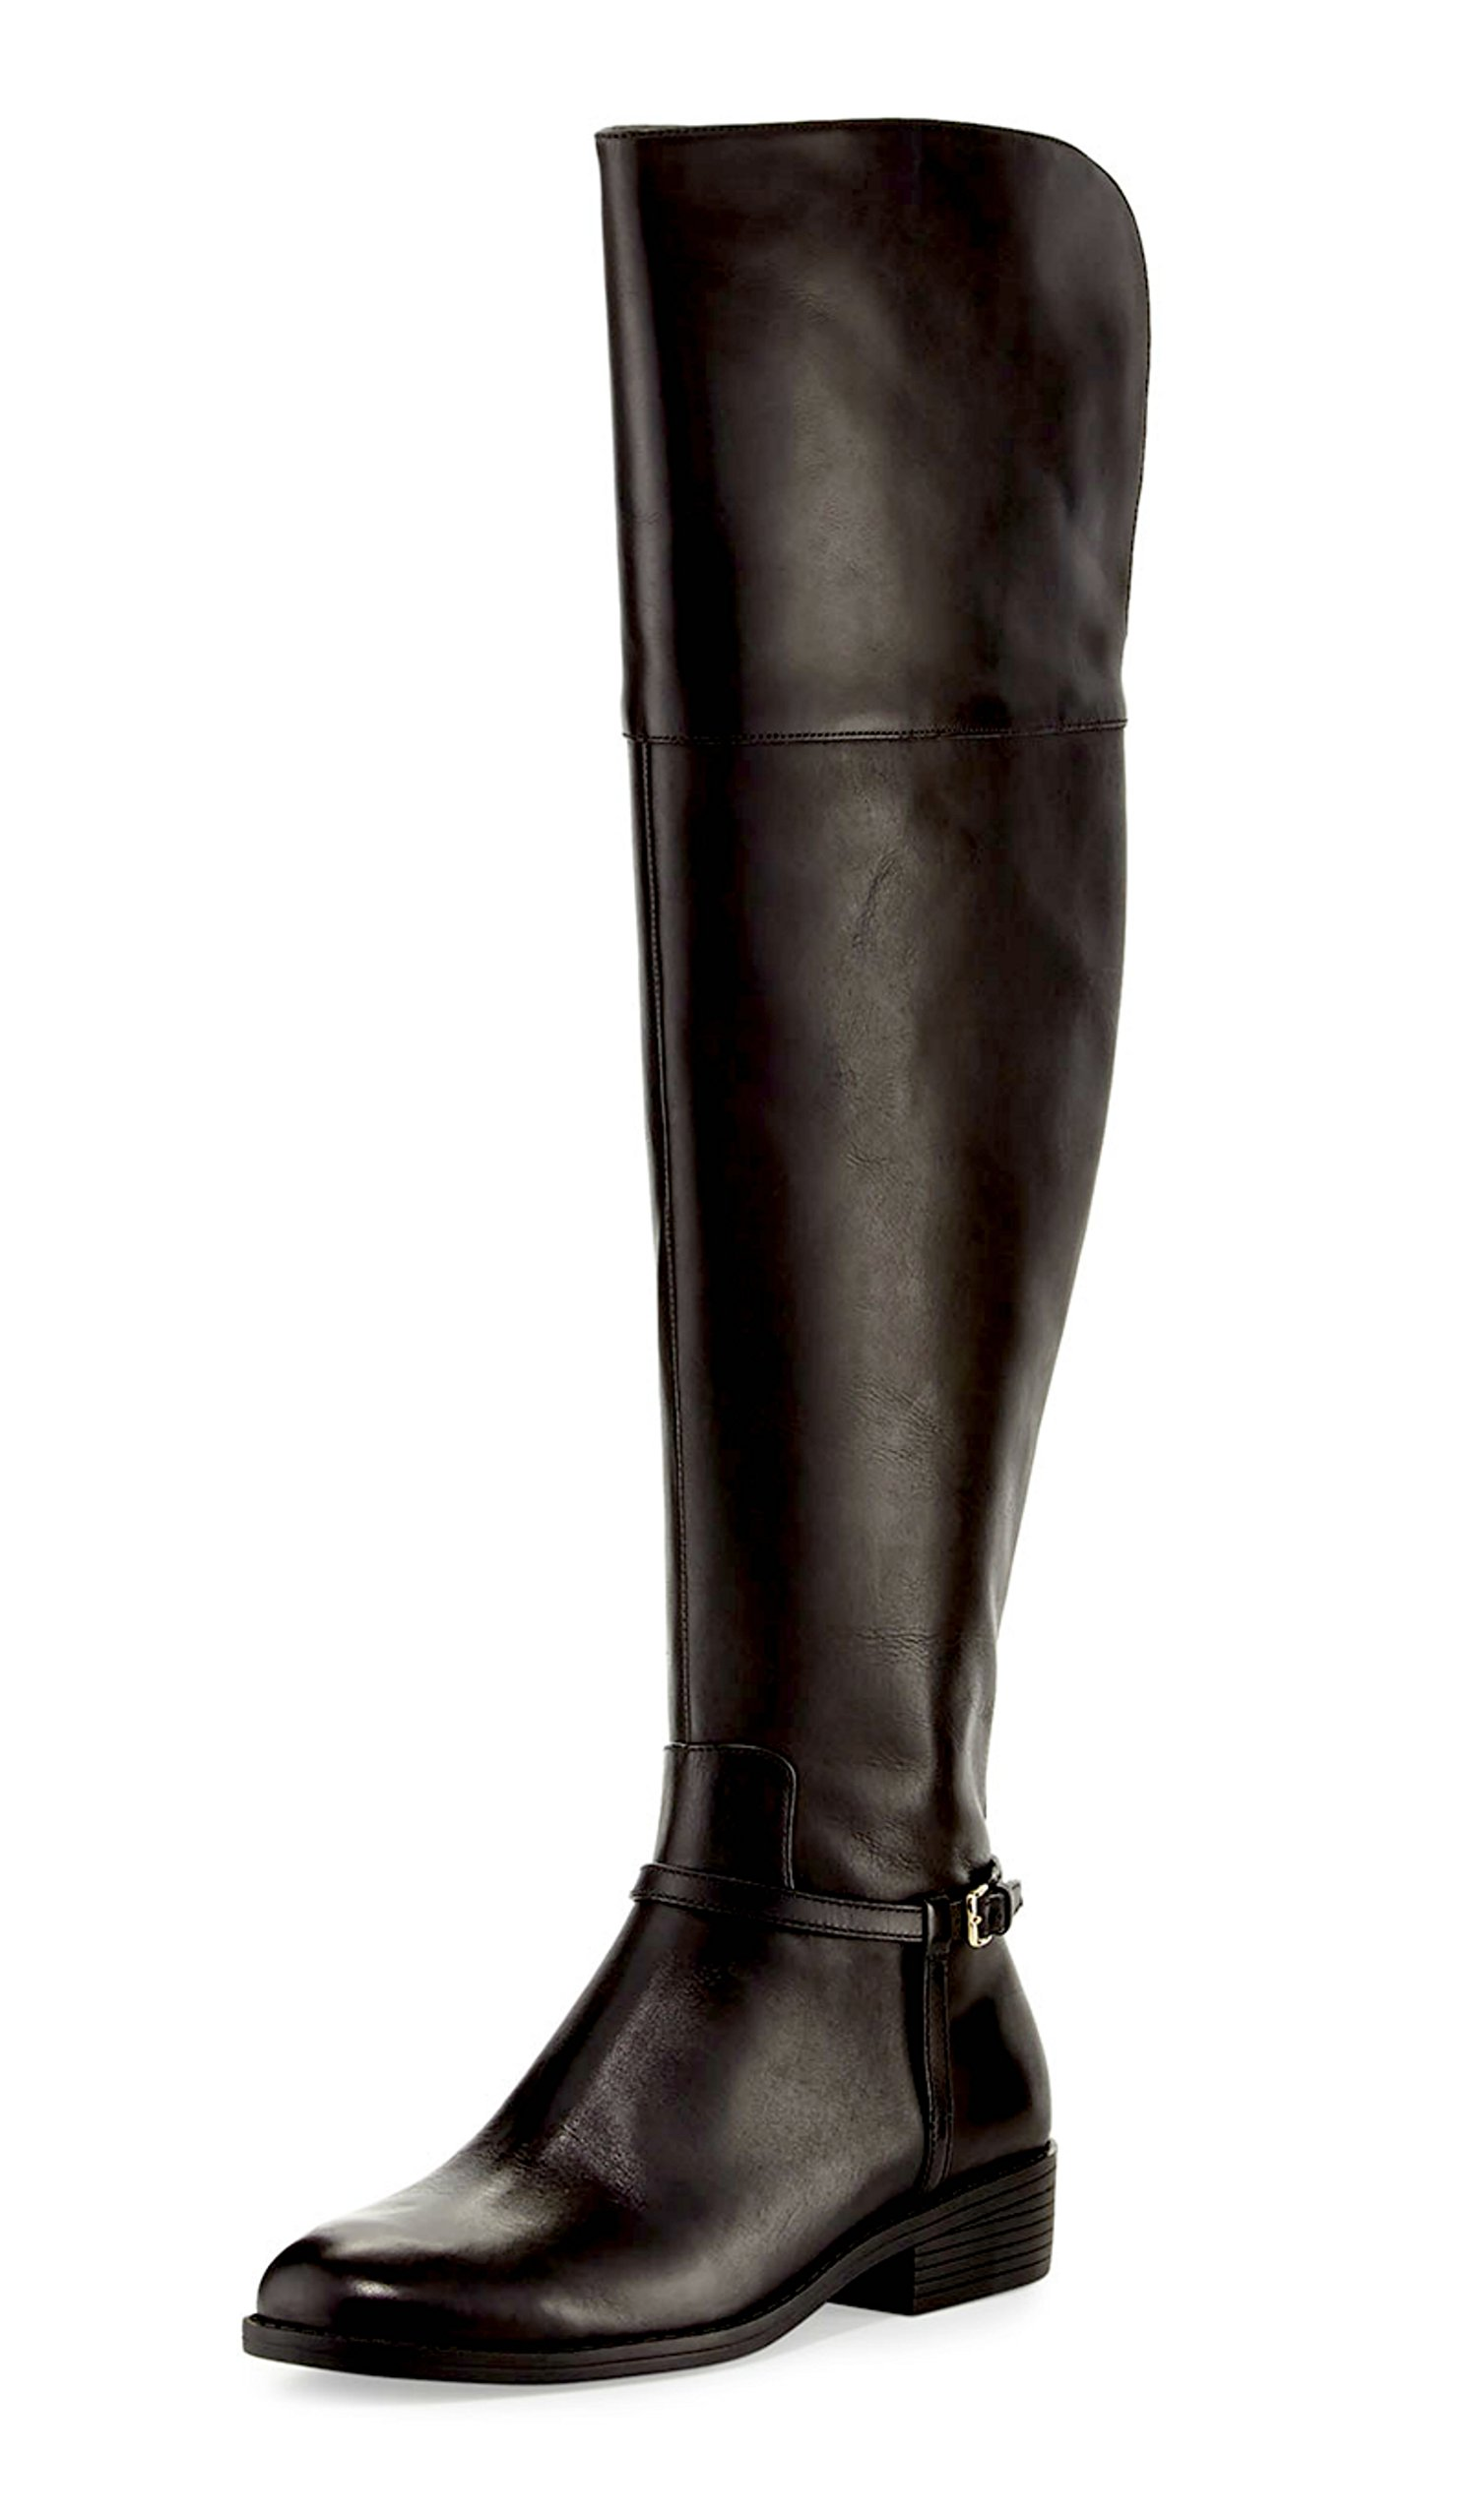 Cole Haan Women's Valentia Over The Knee Boot II Black Shoe by Cole Haan